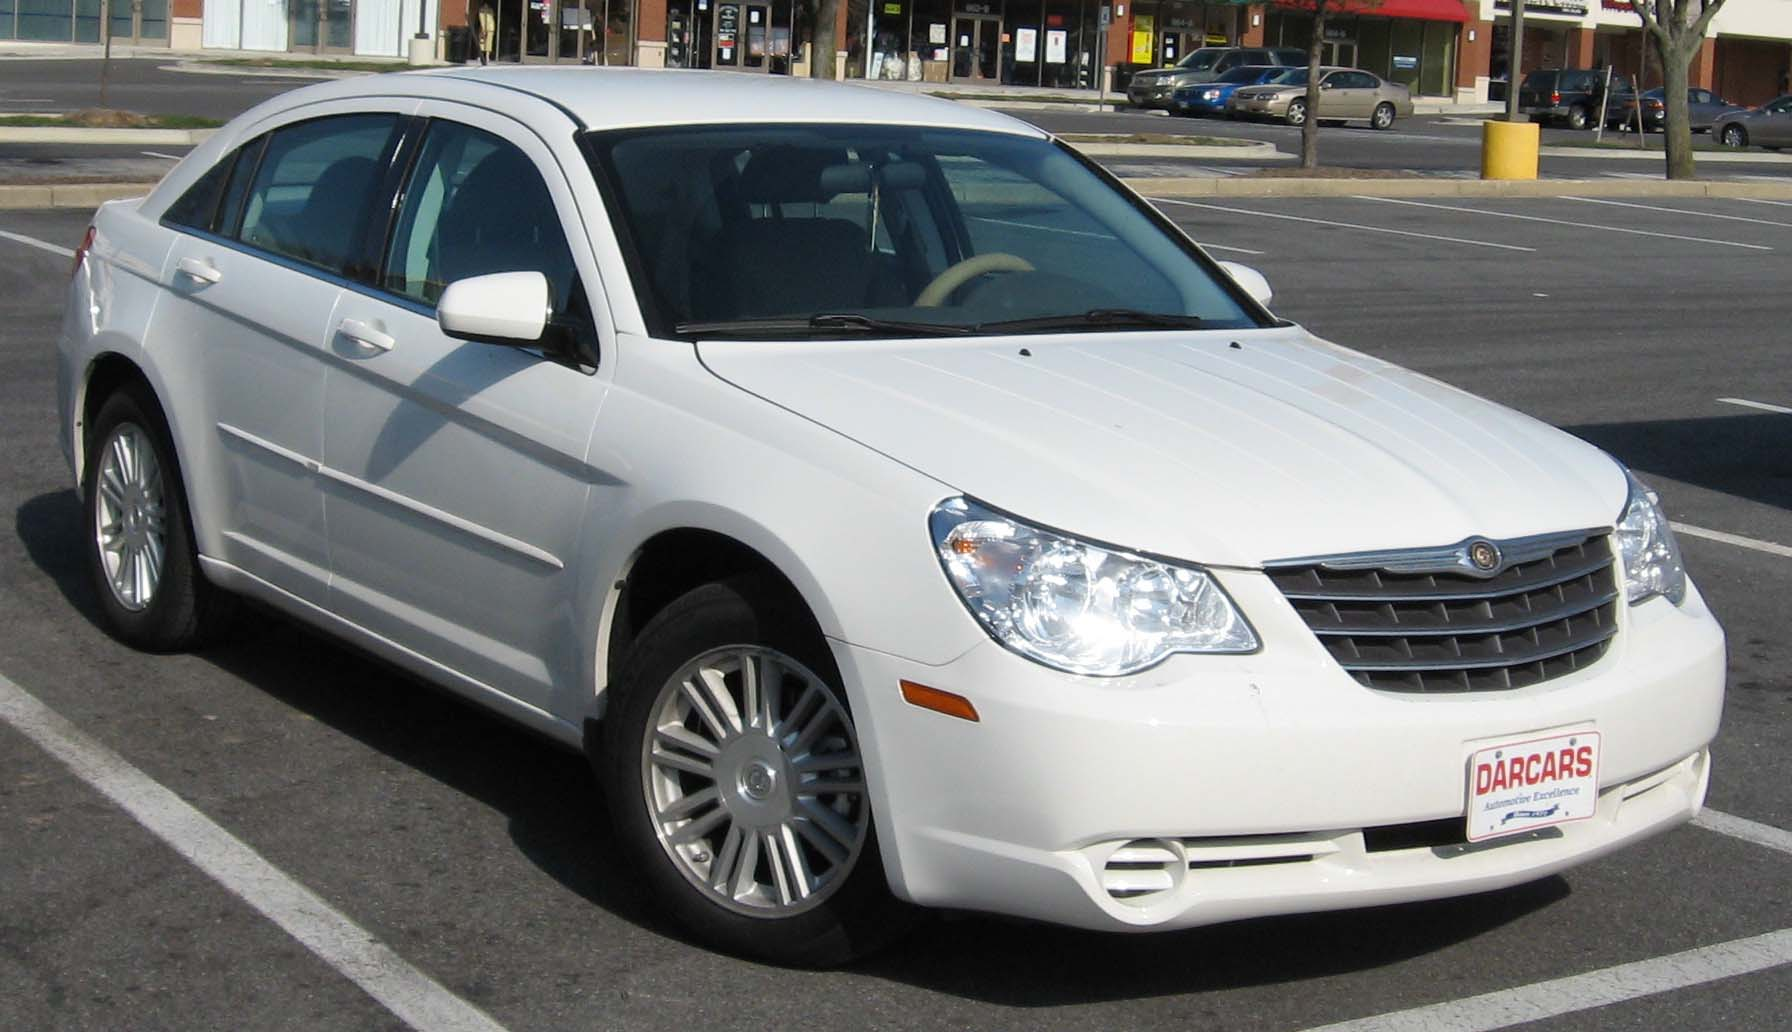 file 2007 chrysler sebring wikimedia commons. Cars Review. Best American Auto & Cars Review